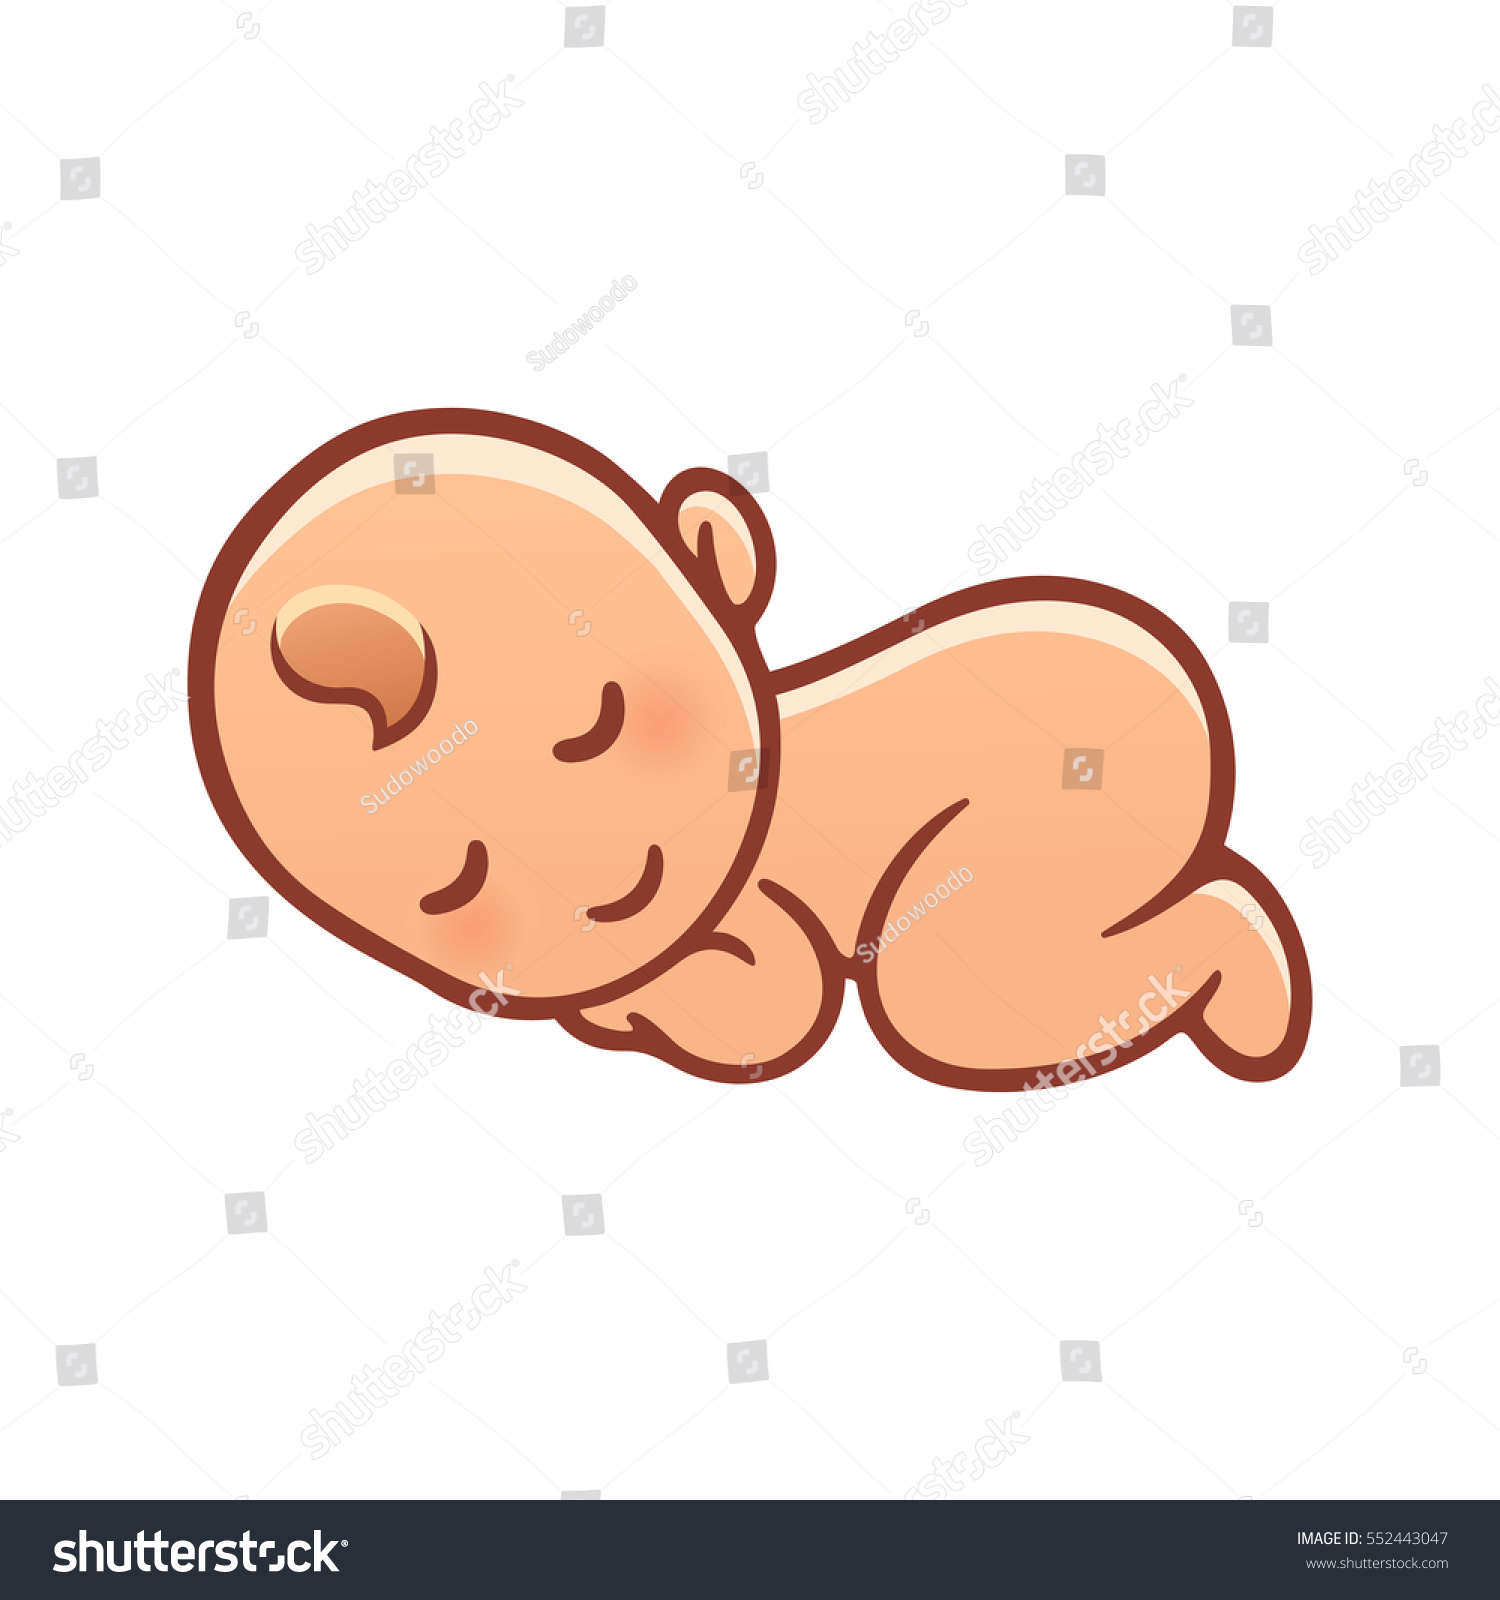 Cute Sleeping Baby Drawing Simple Cartoon Stock Vector Royalty